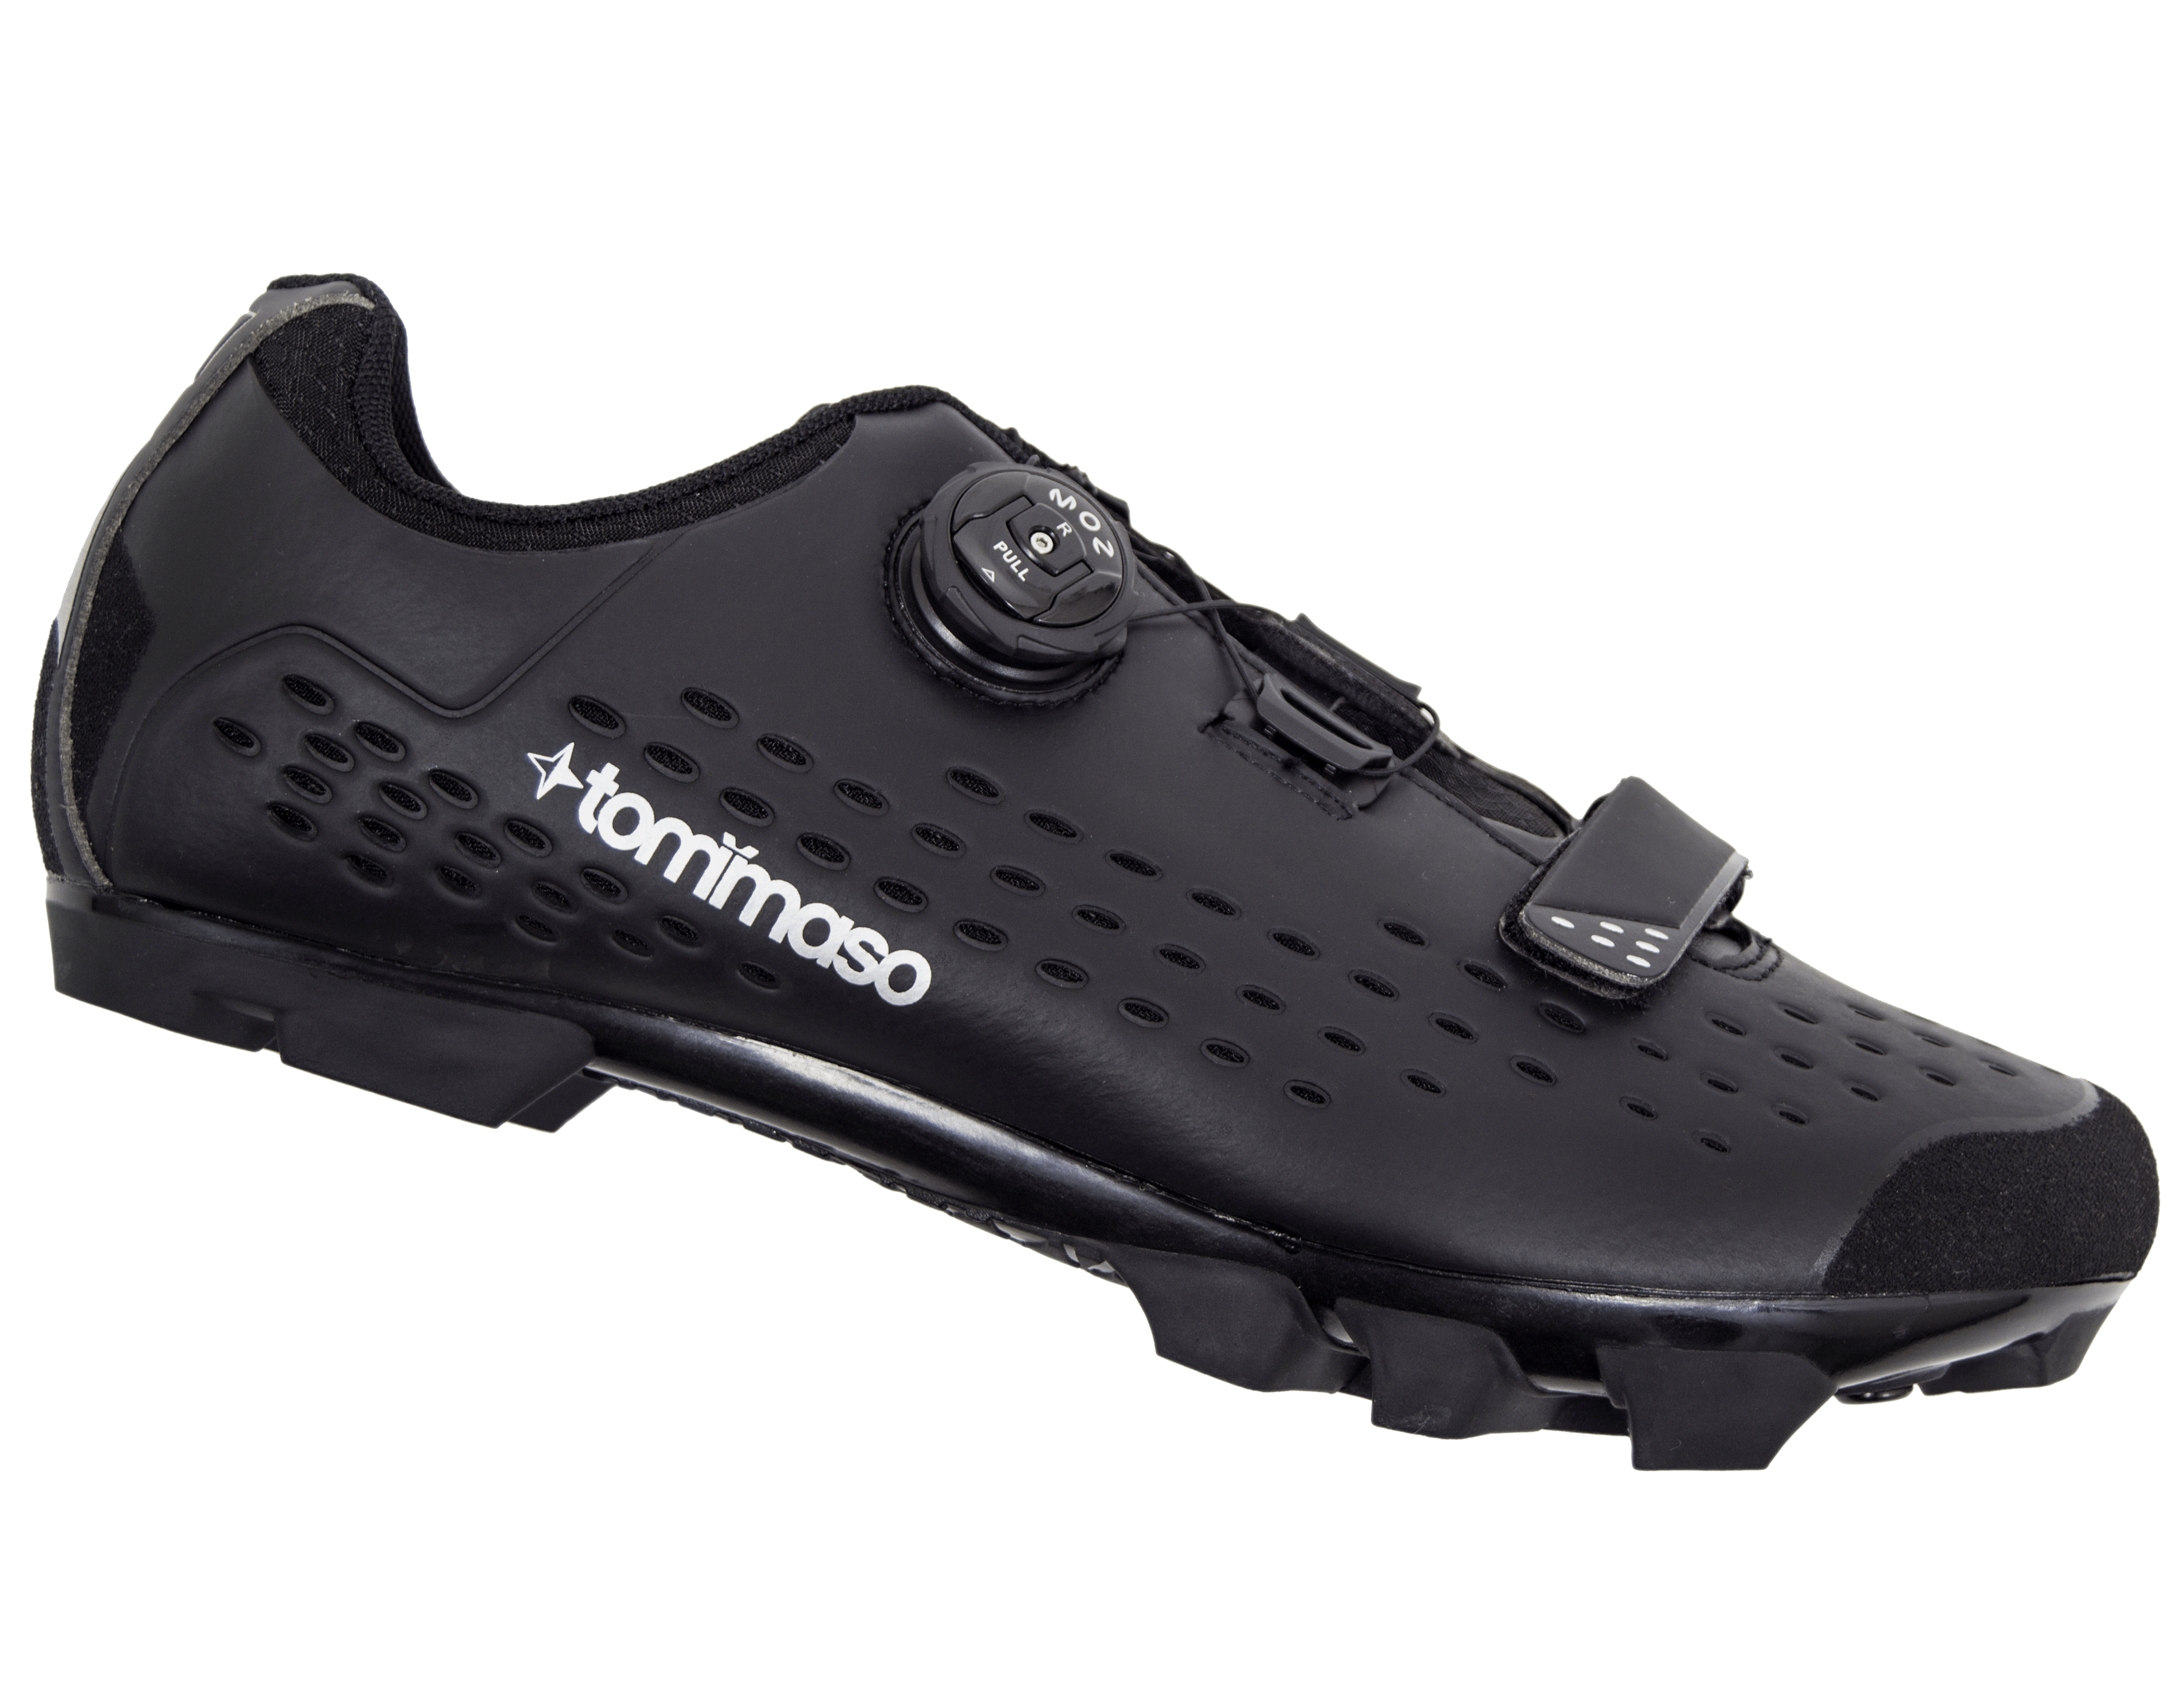 15 Best Cycling Shoes and Pedals of 2018 - Buying Guide and Reviews 35